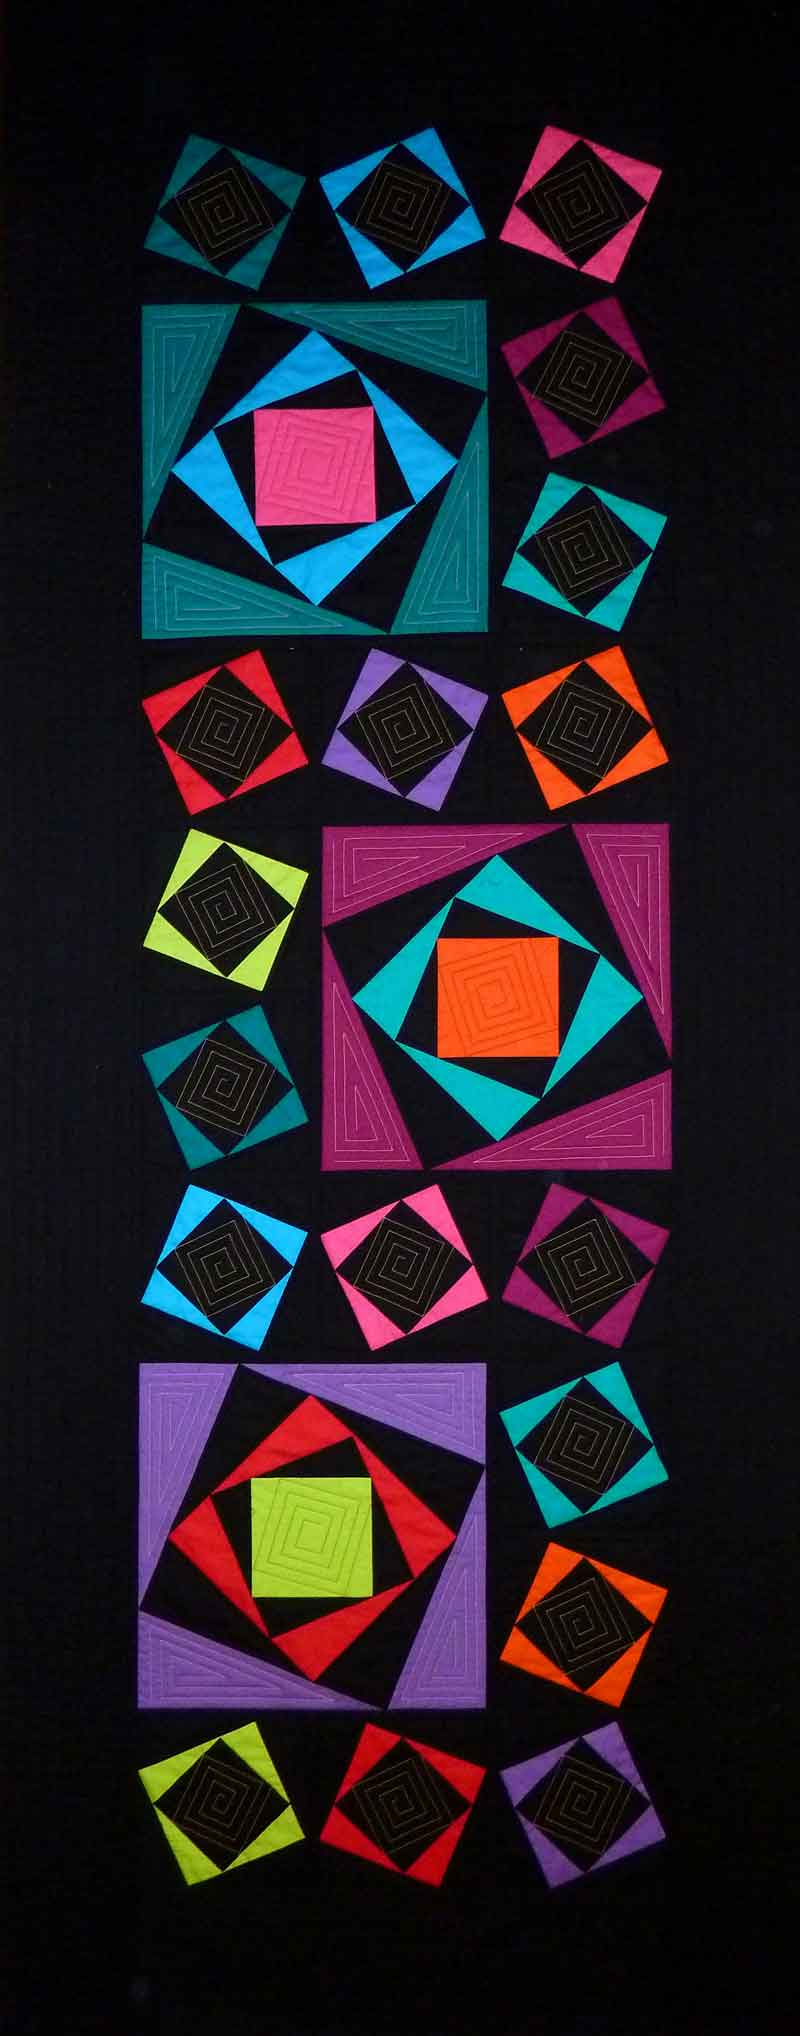 Logorhythmic Quilt by Ann and Darren Mayner